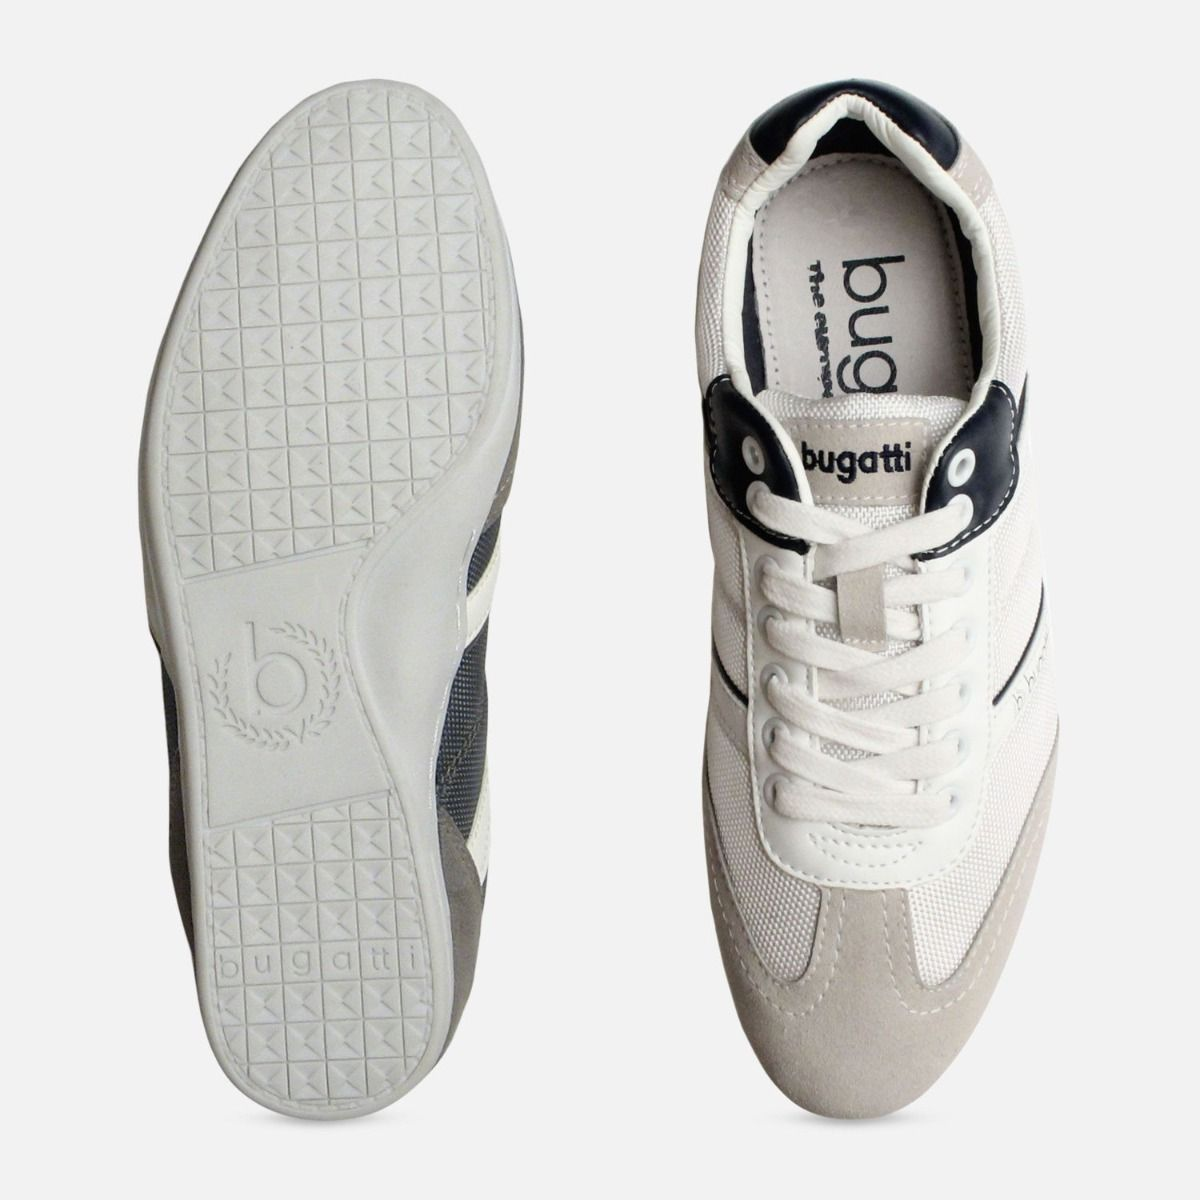 Grey & White Designer Bugatti Sneakers